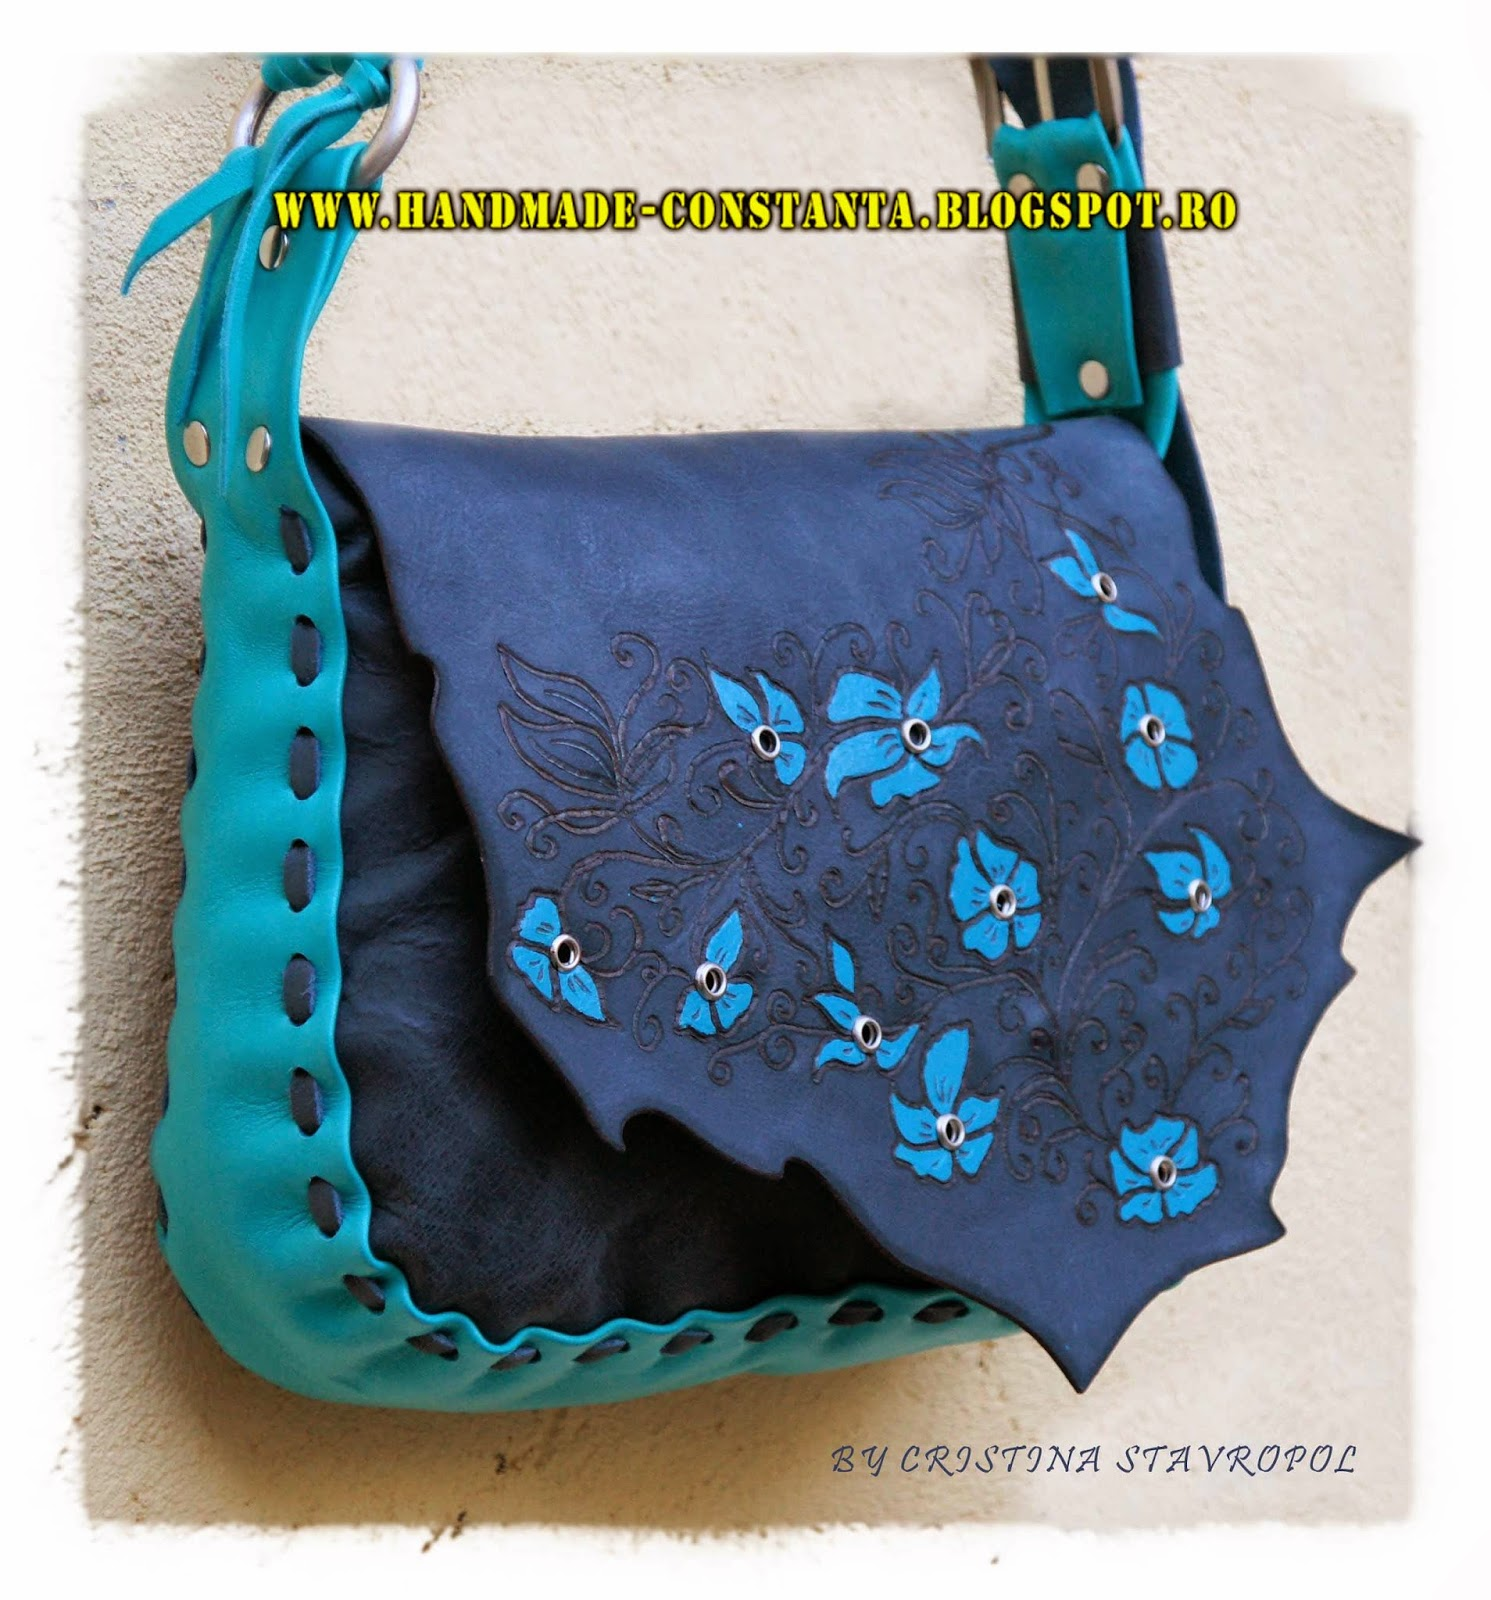 Gray bag - turquoise leather pyrography manual.